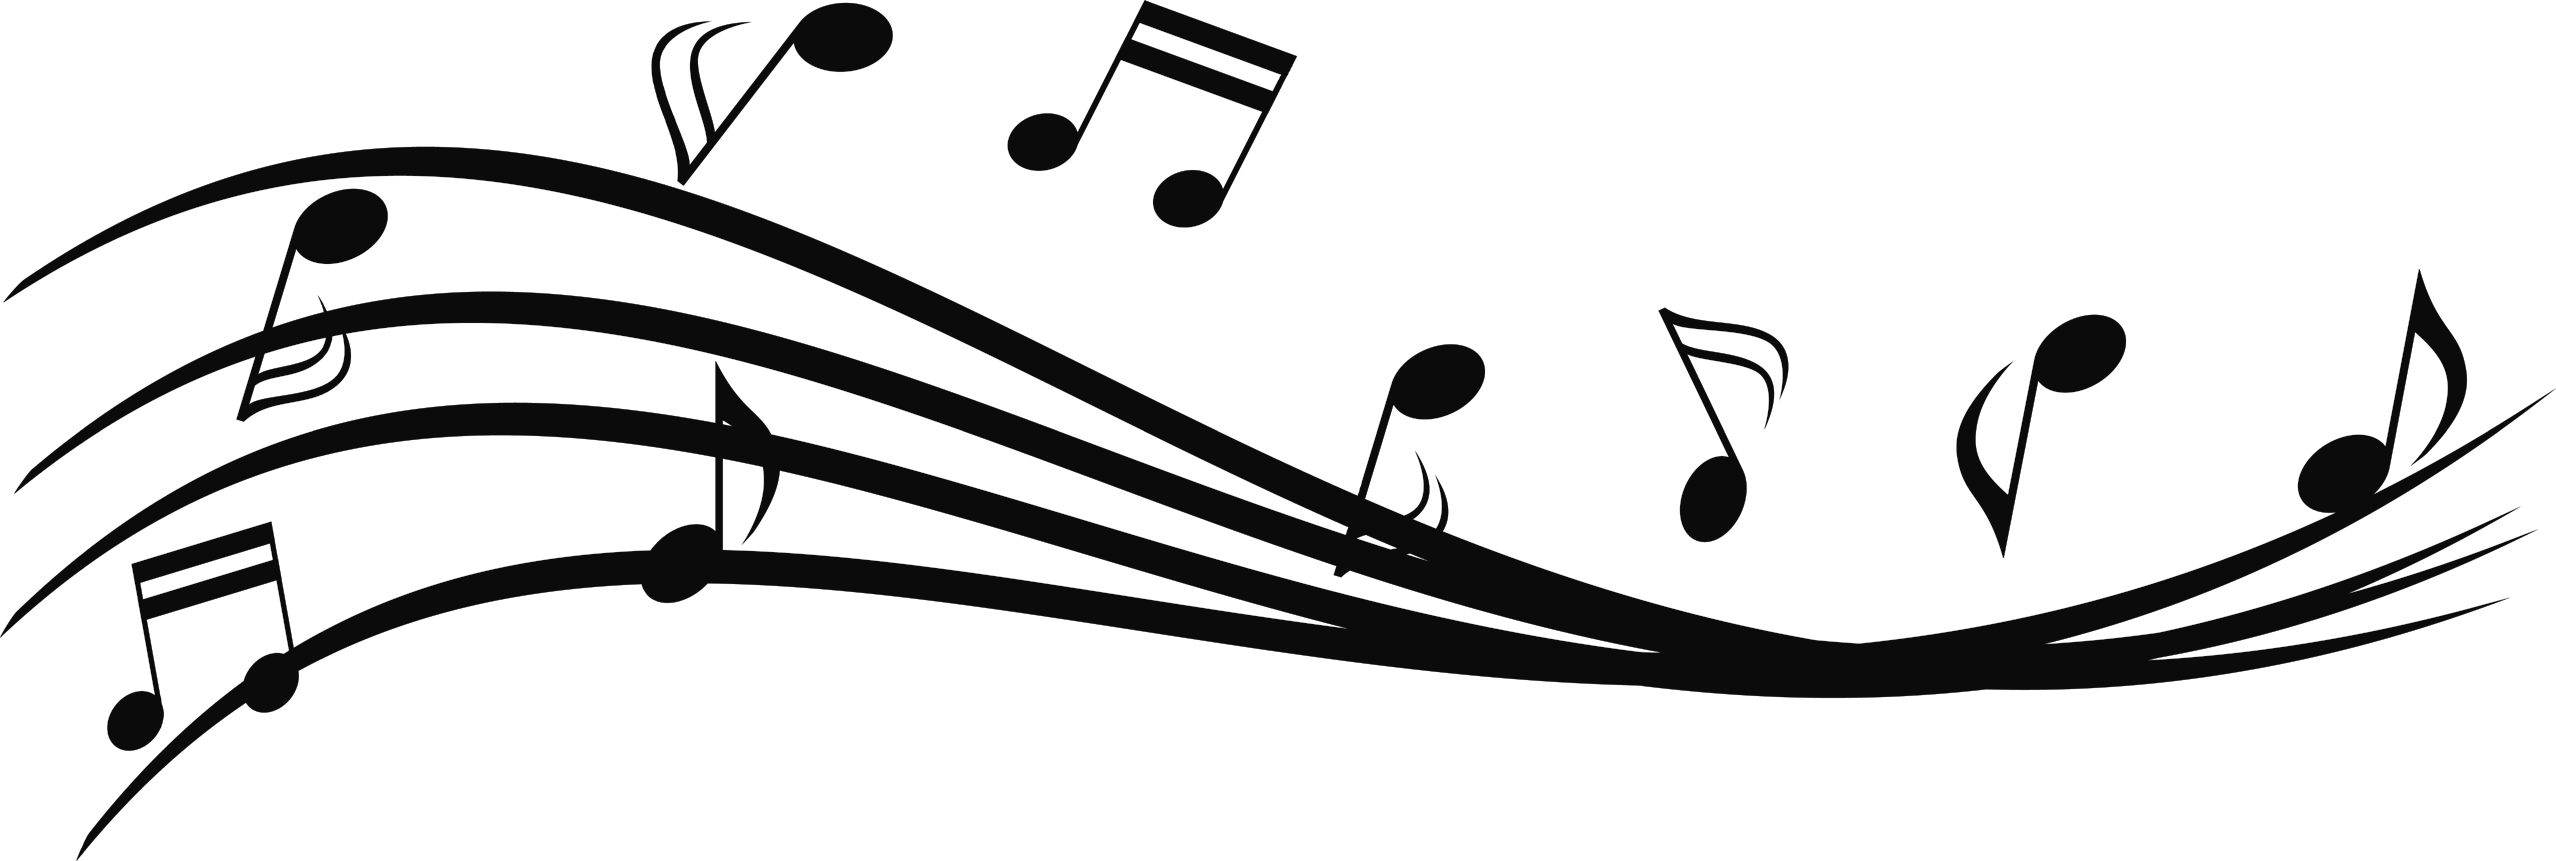 Music Notes PNG, psd, vector, icon Transparent images FREE